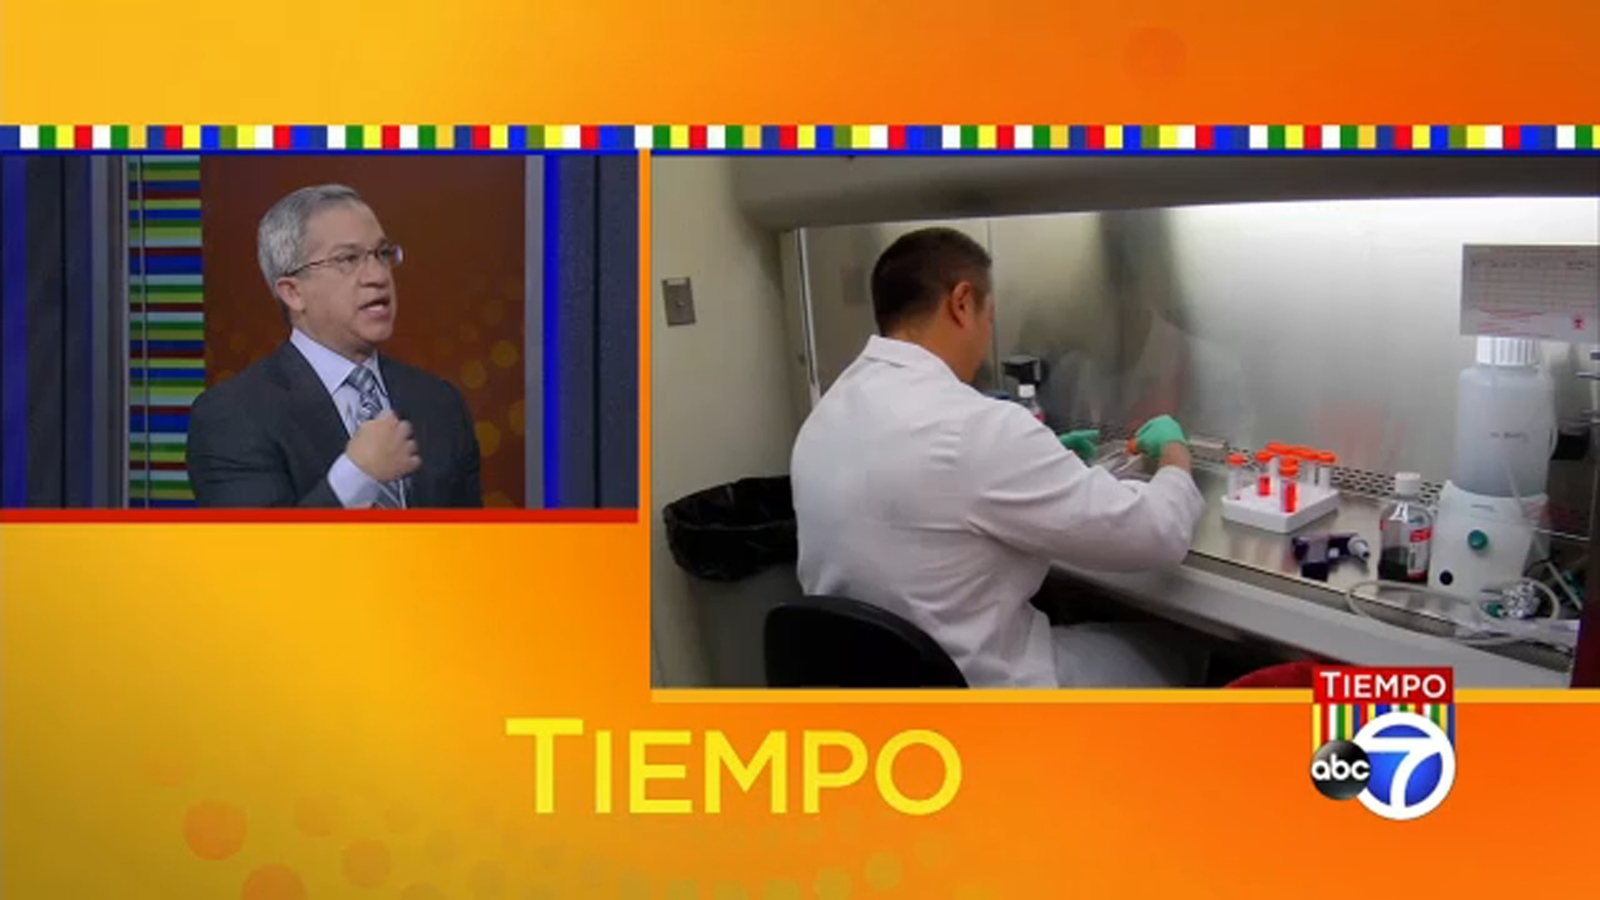 Tiempo: STEM and dentistry-related careers for Latinos